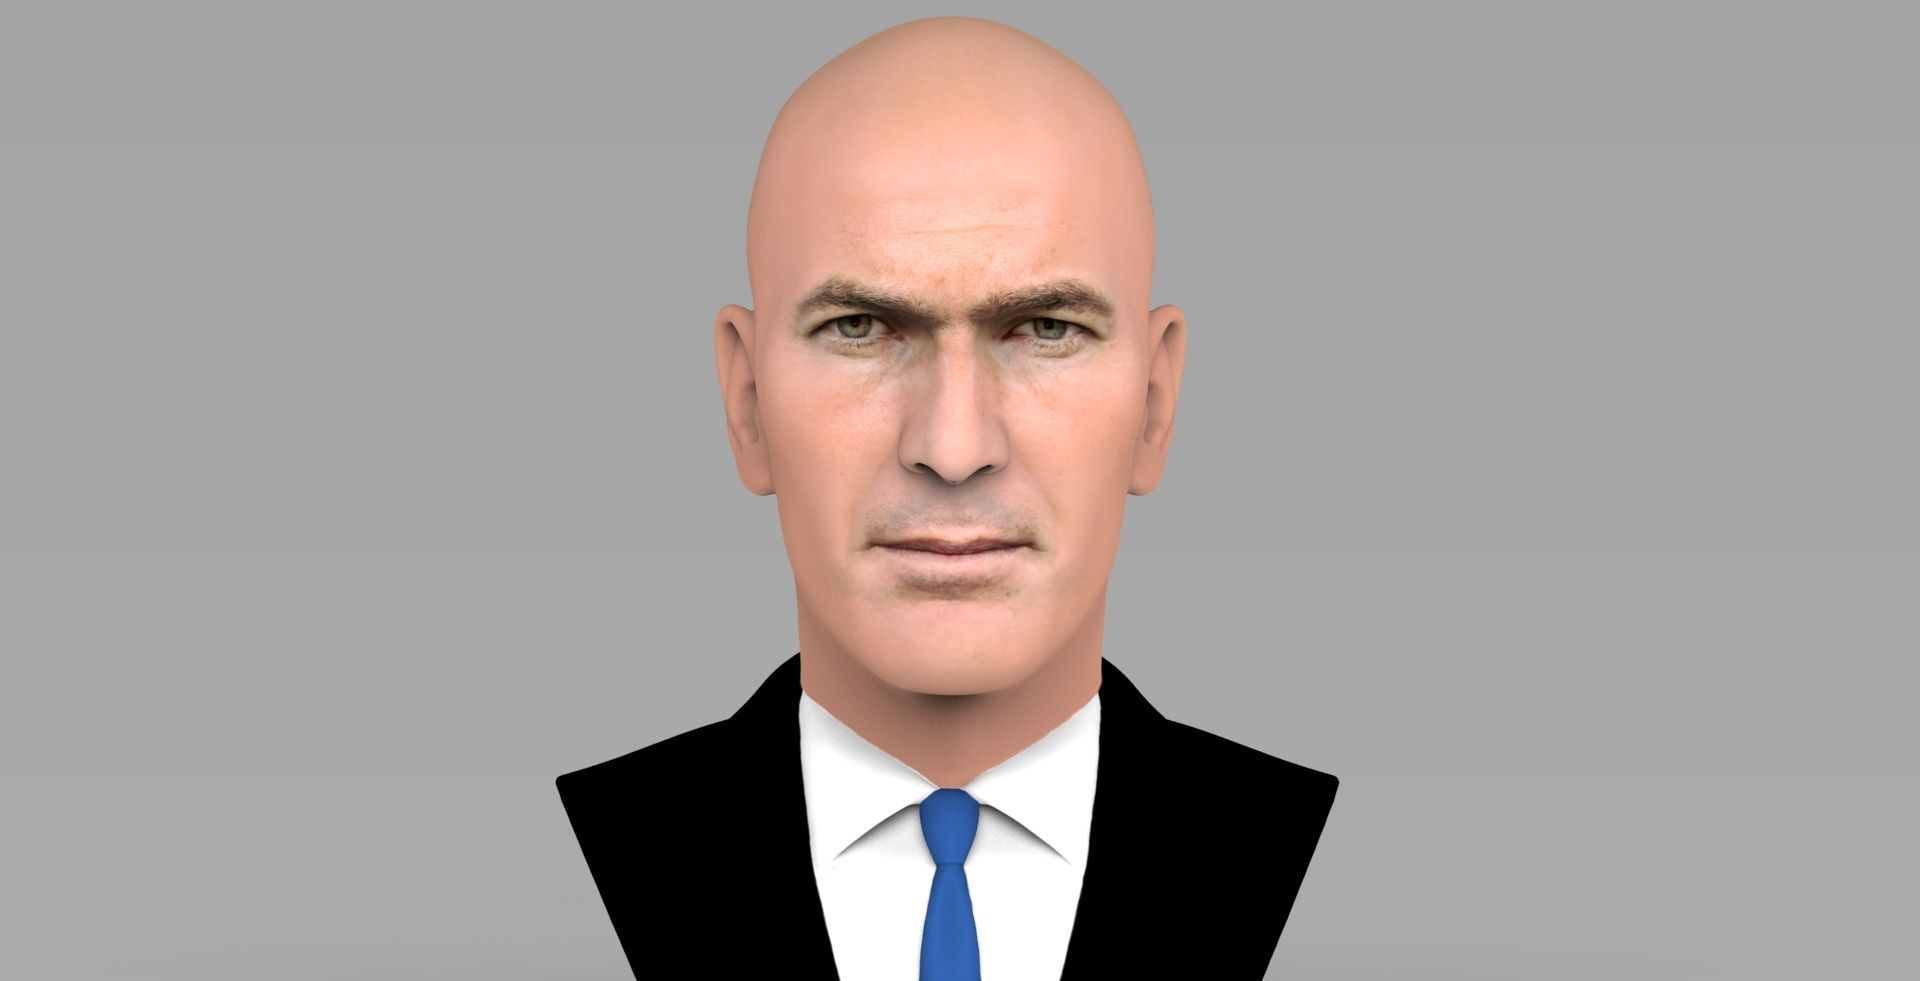 Zinedine Zidane bust ready for full color 3D printing